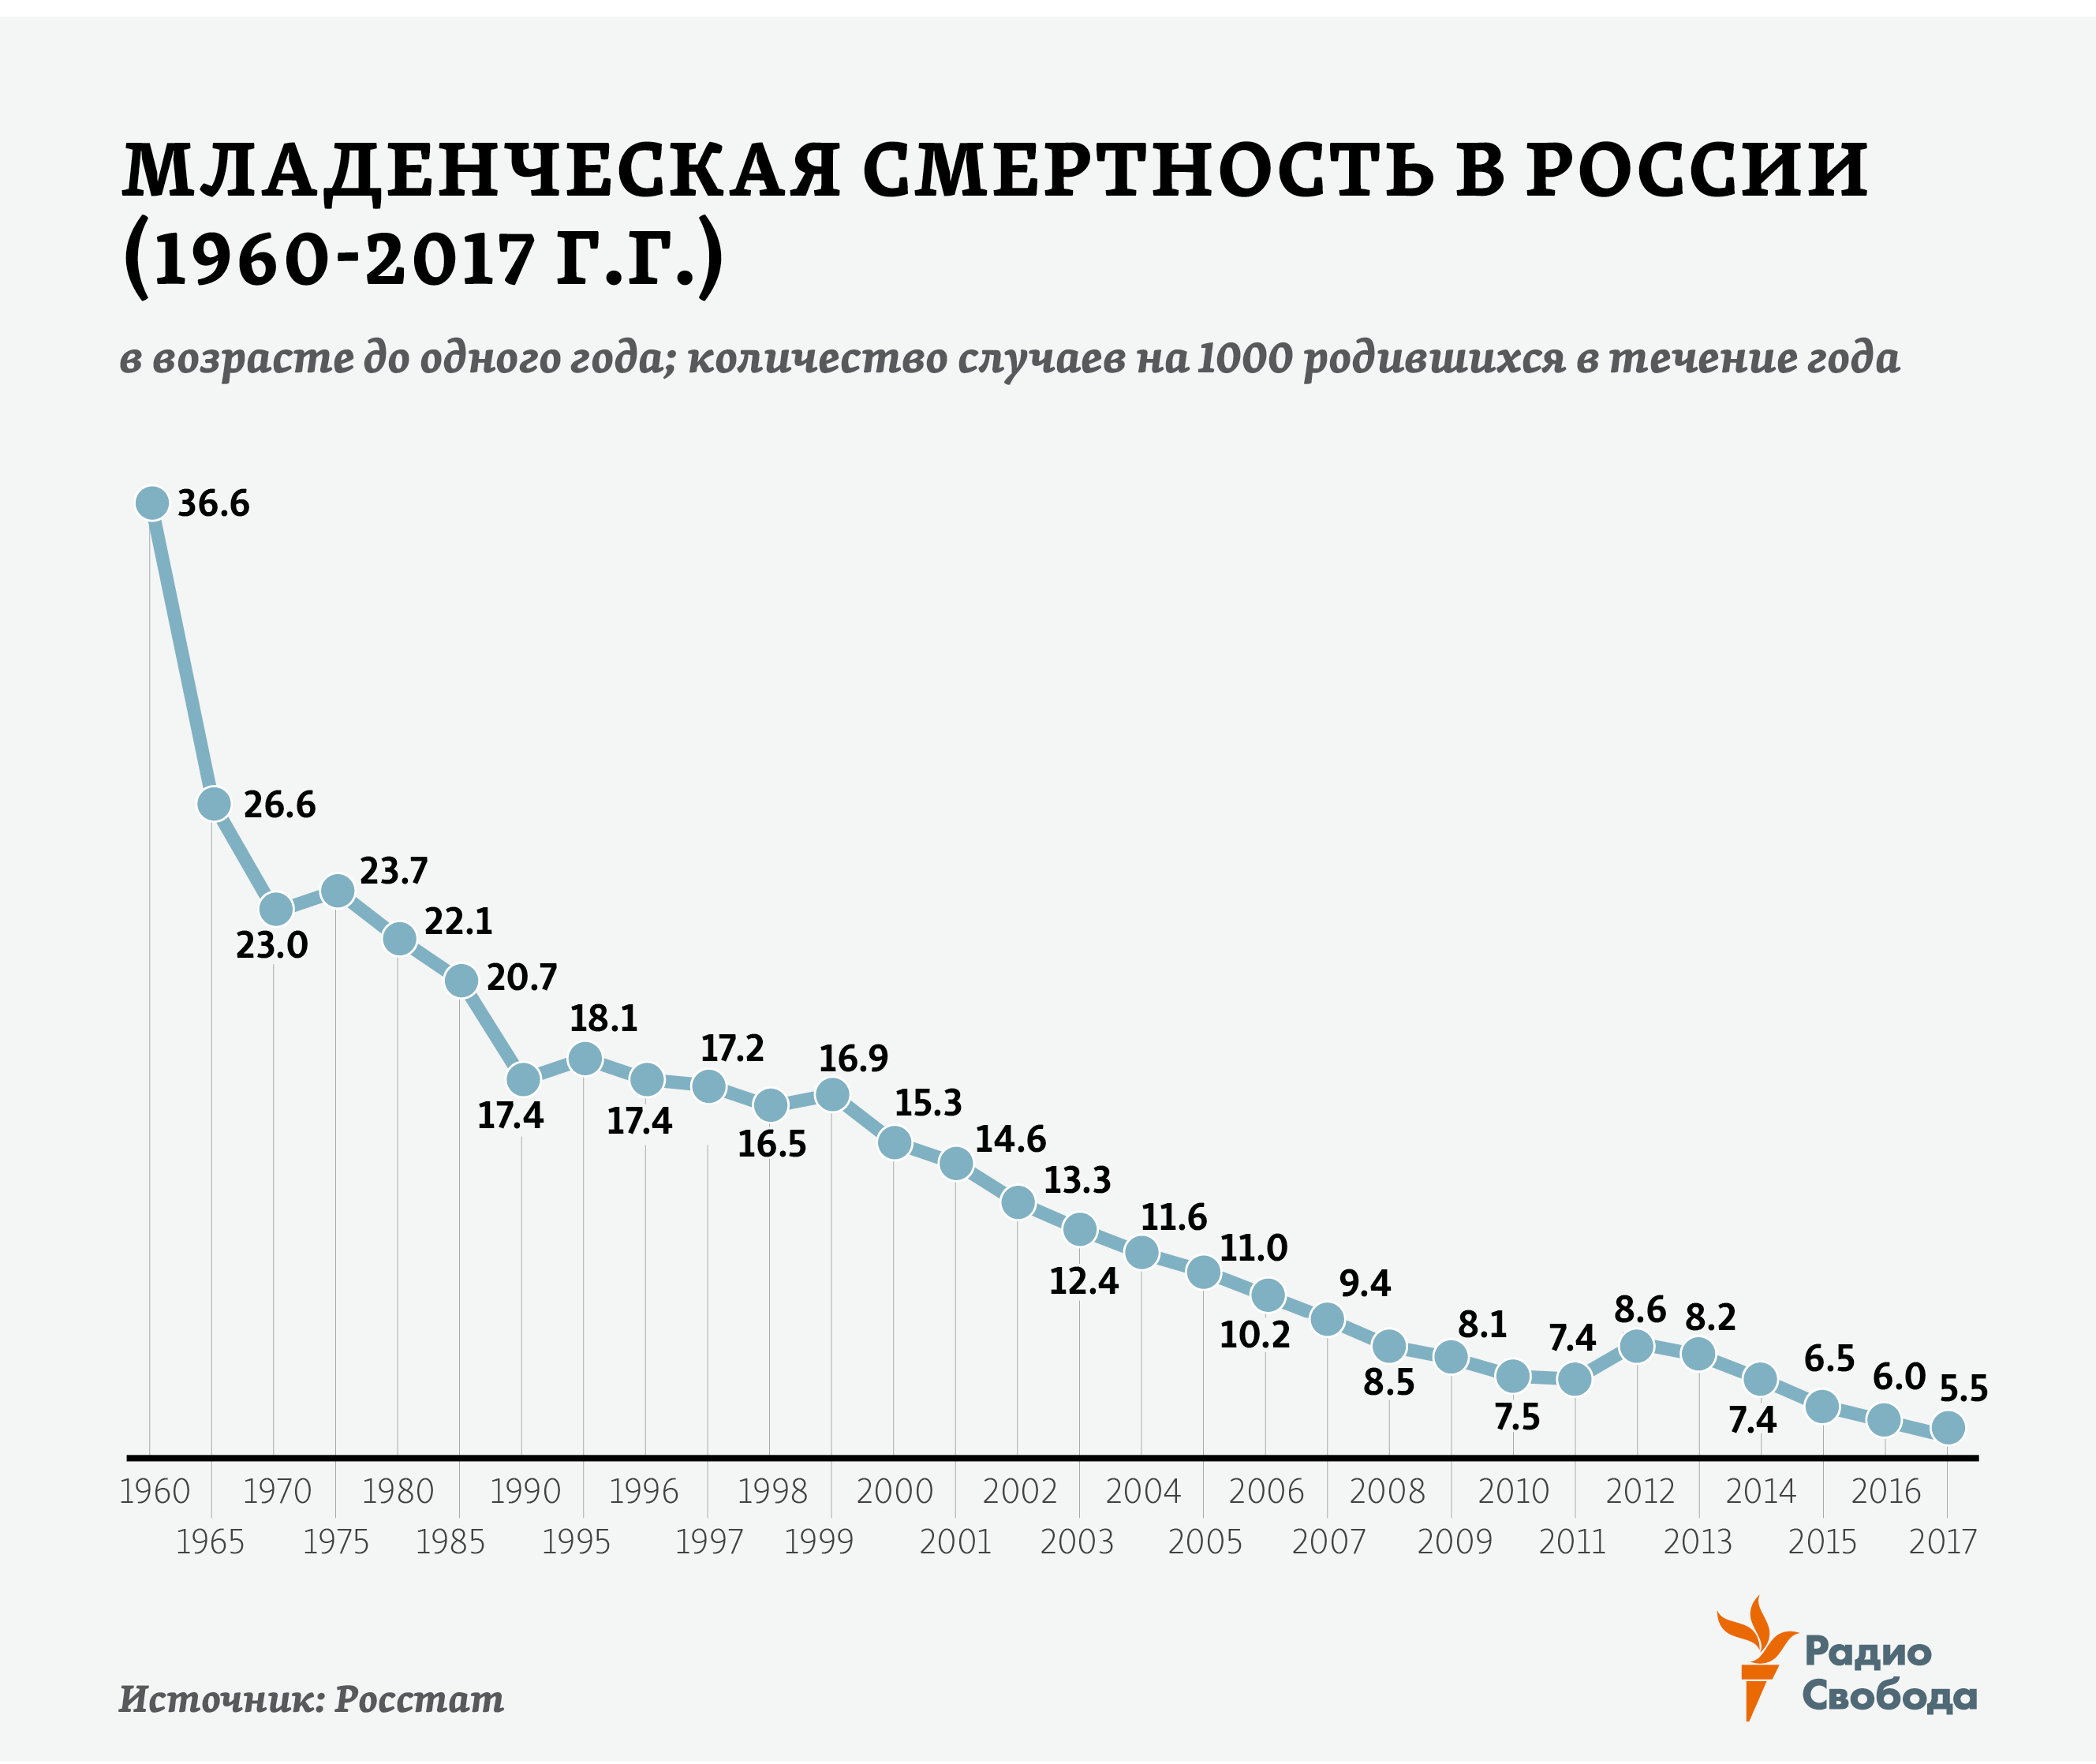 Russia-Factograph-Infant Mortality-Russia-1960-2017